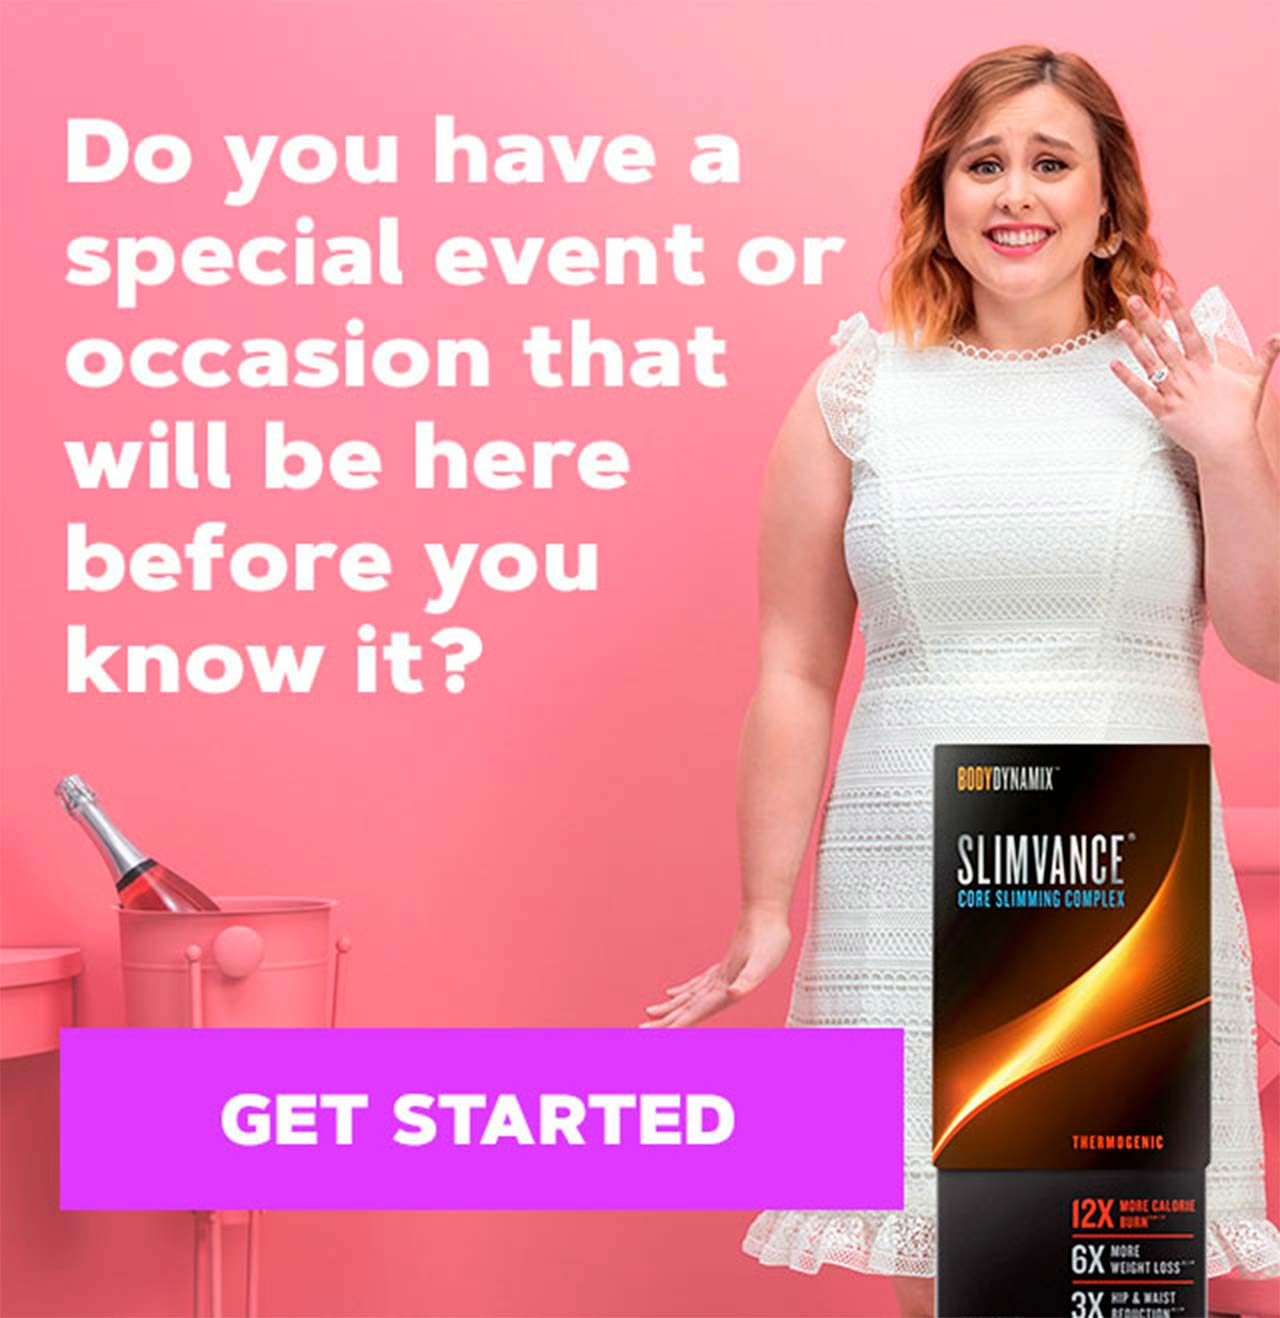 Do you have a special event or occasion that will be here before you know it? GET STARTED